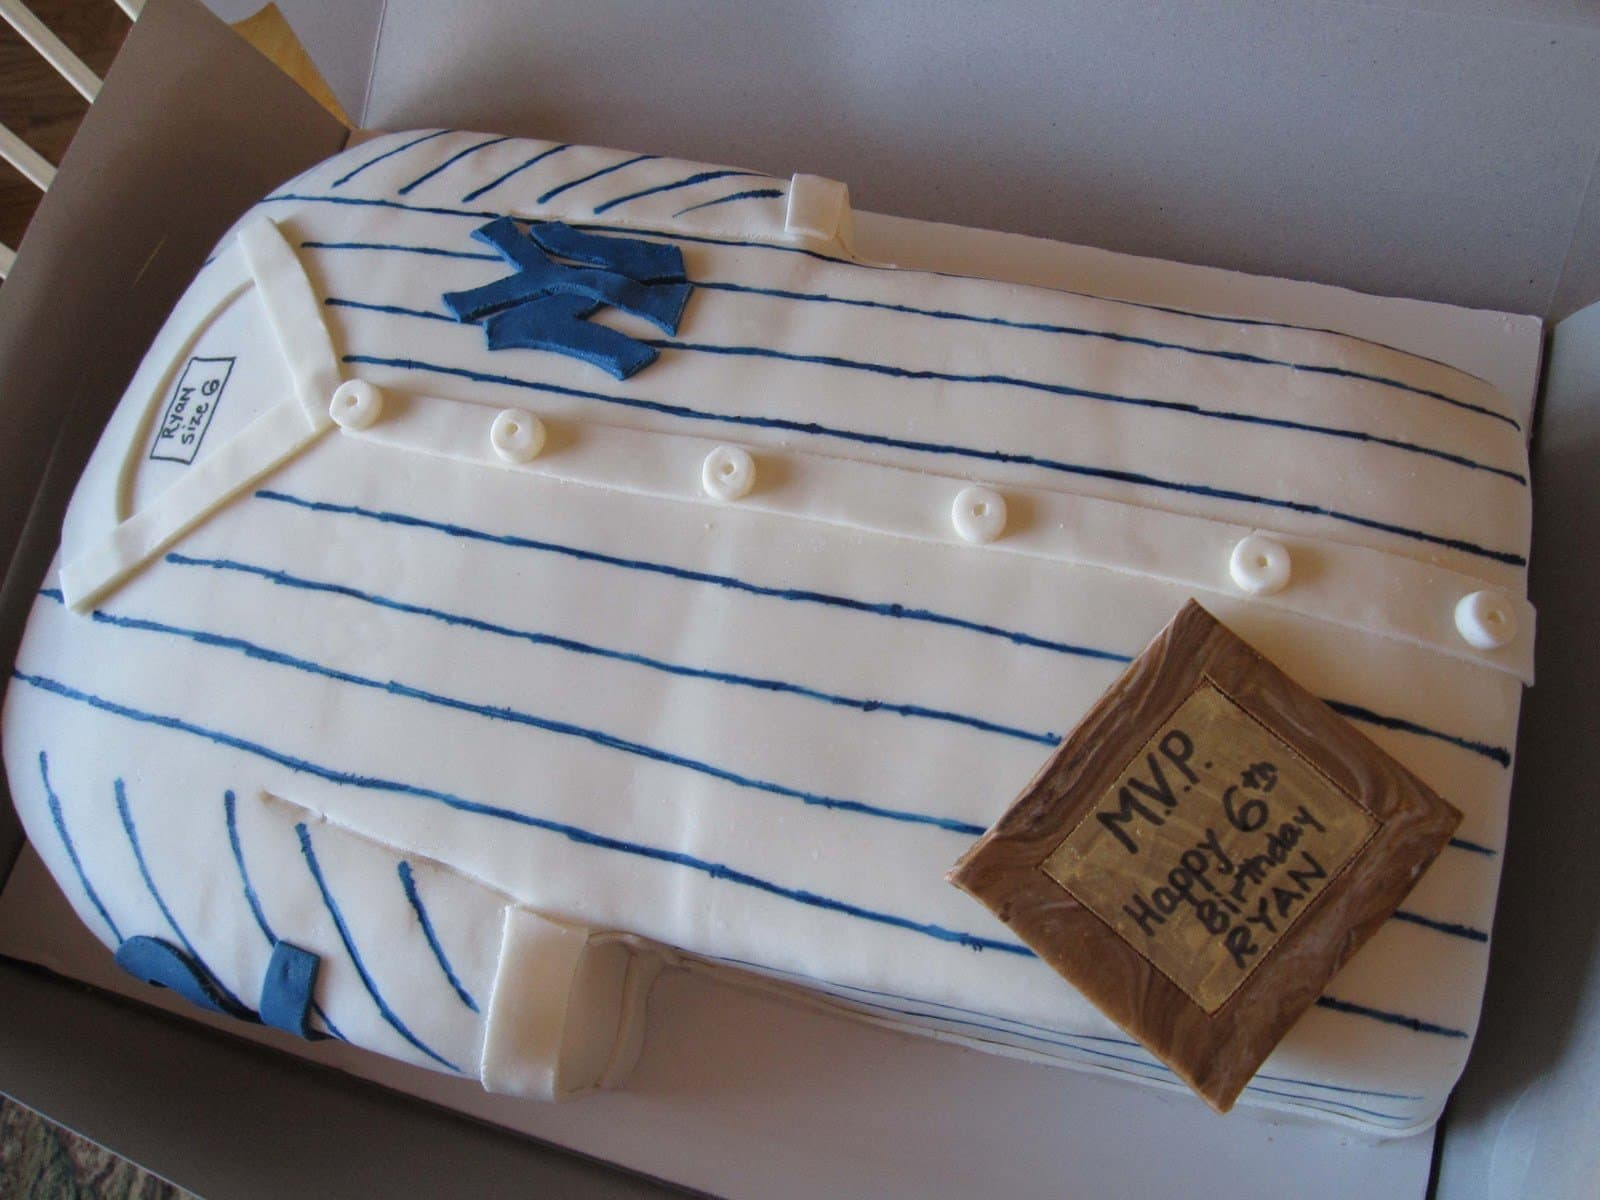 Close-up view of a cake decorated as a Yankees jersey